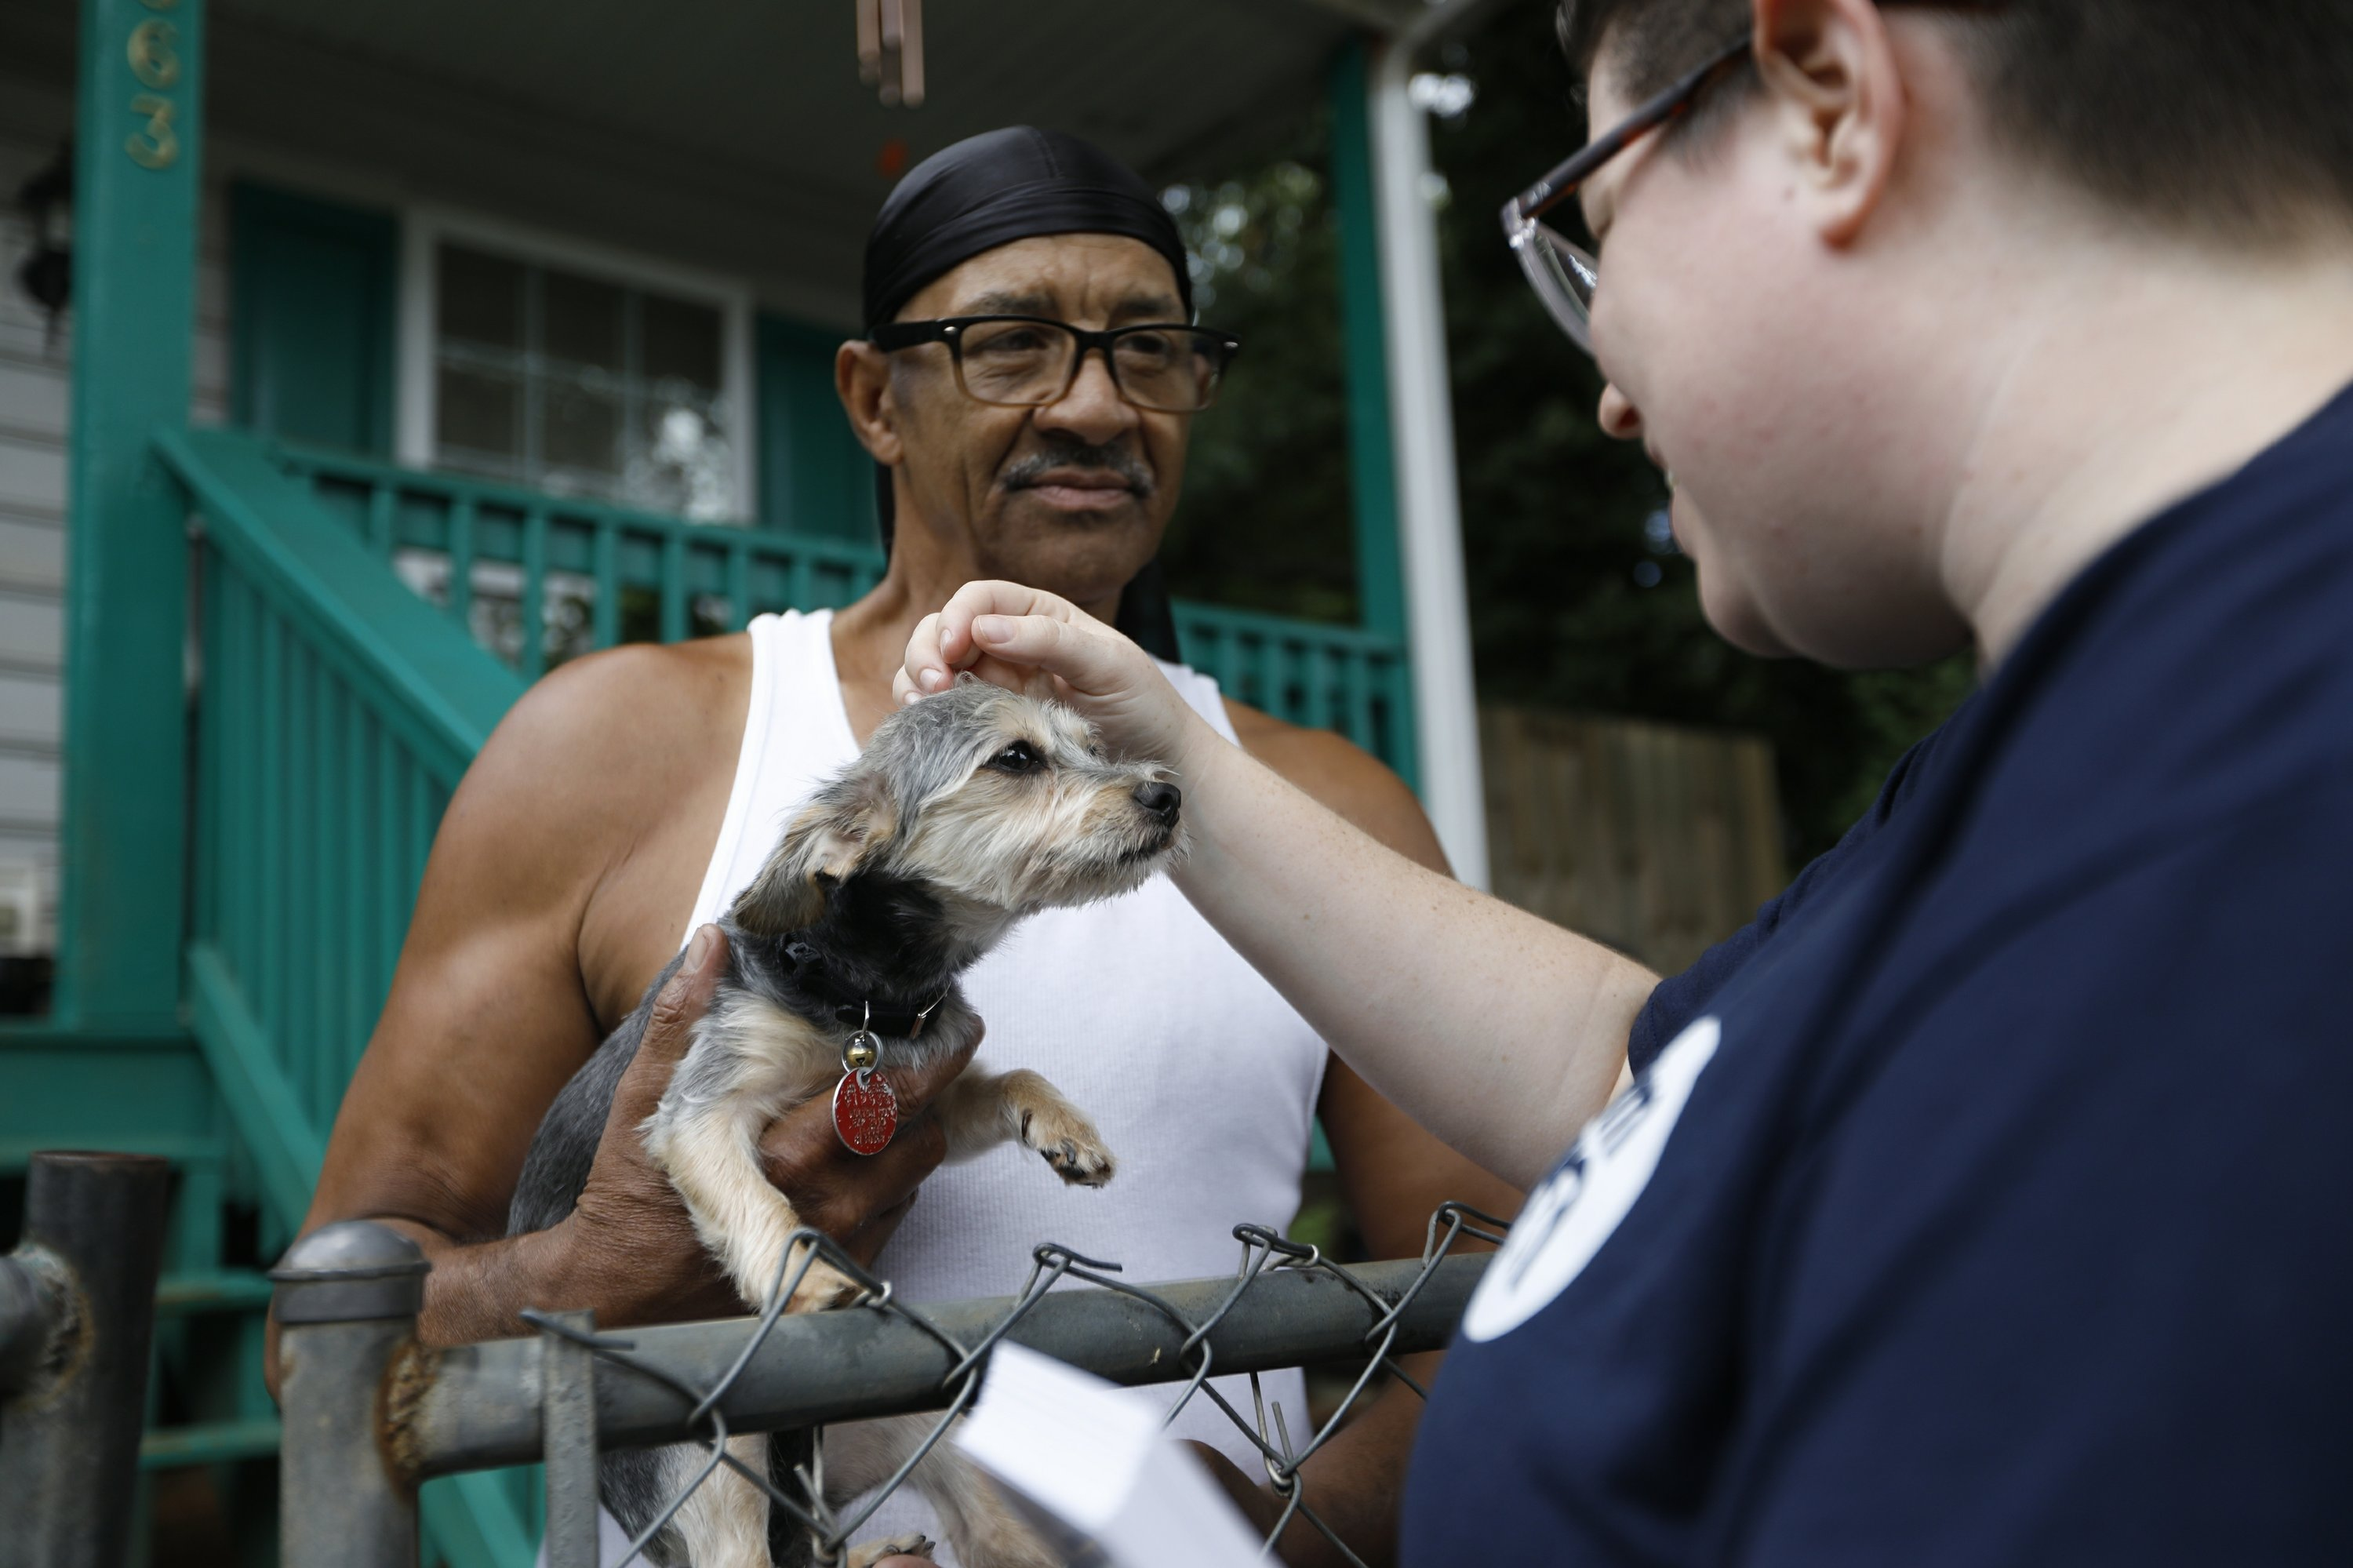 Saving pets: Program lends hand to low-income animal owners